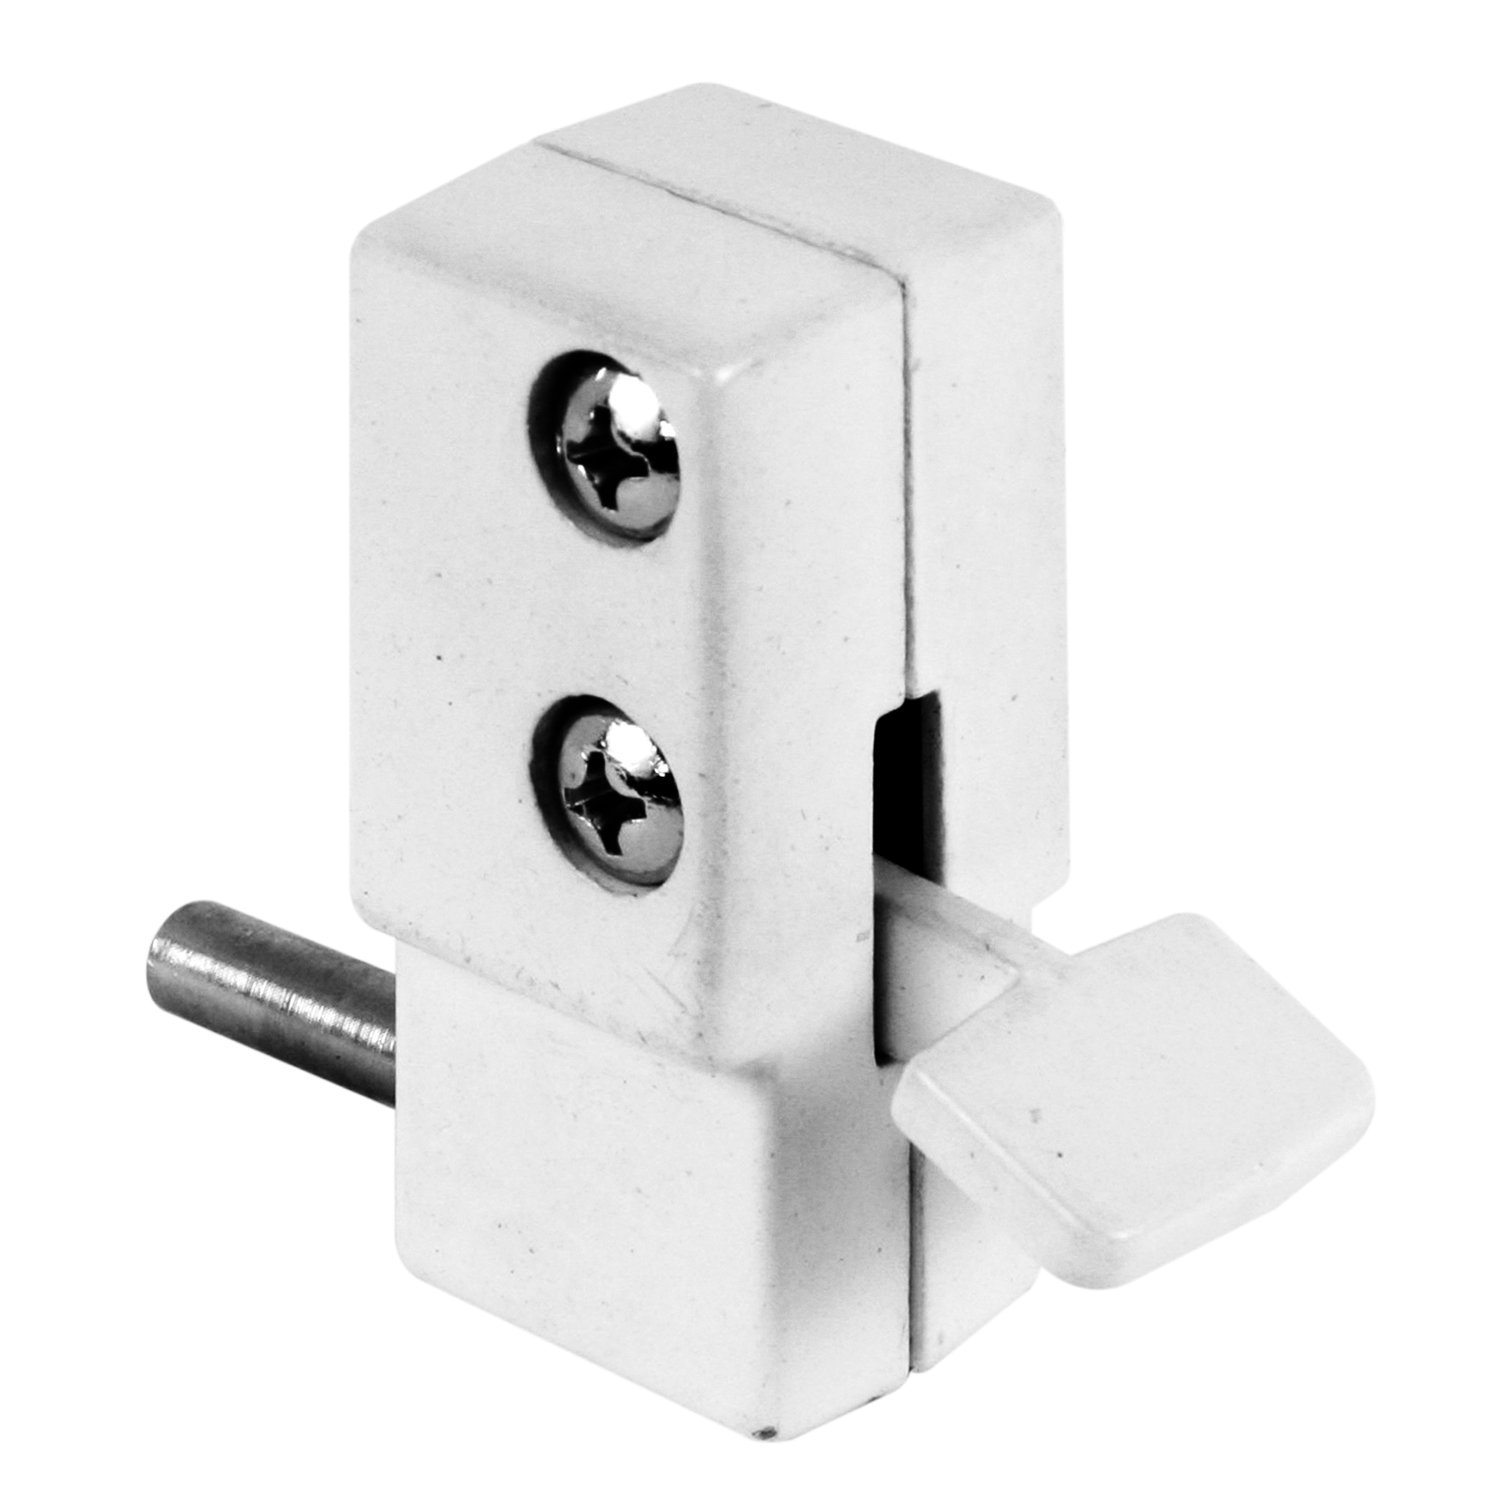 """Defender Security S 4355 Step on Sliding Door Lock with Diecast Housing and Hardened Steel Bolt, 5/8"""", White"""